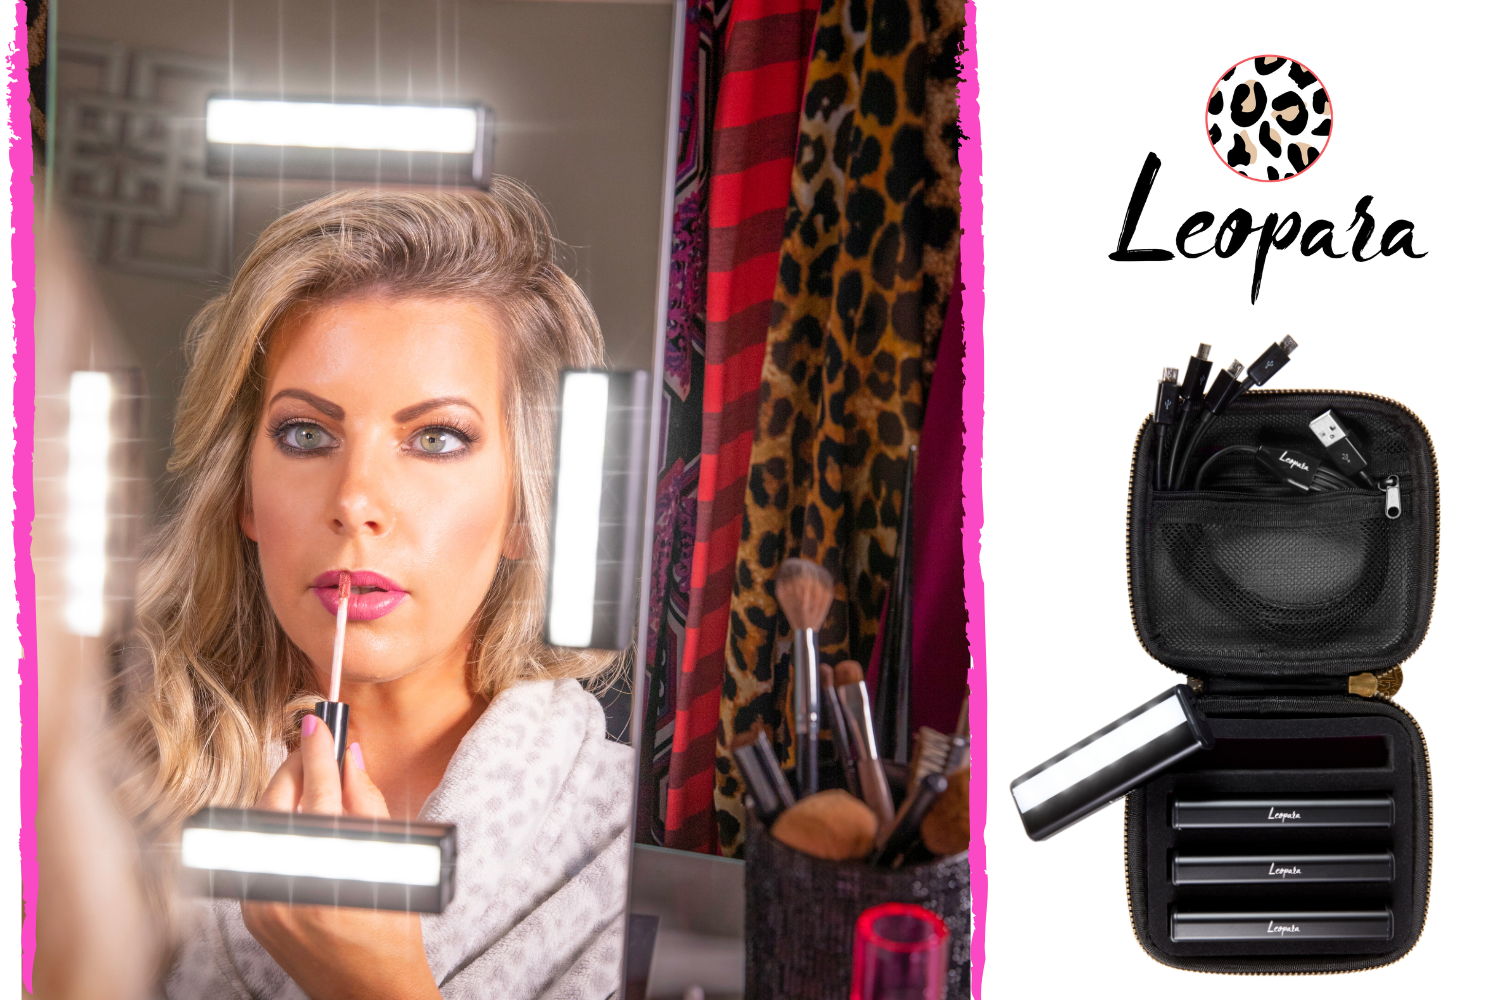 <small>Leopara Makeup Lighting System</small>